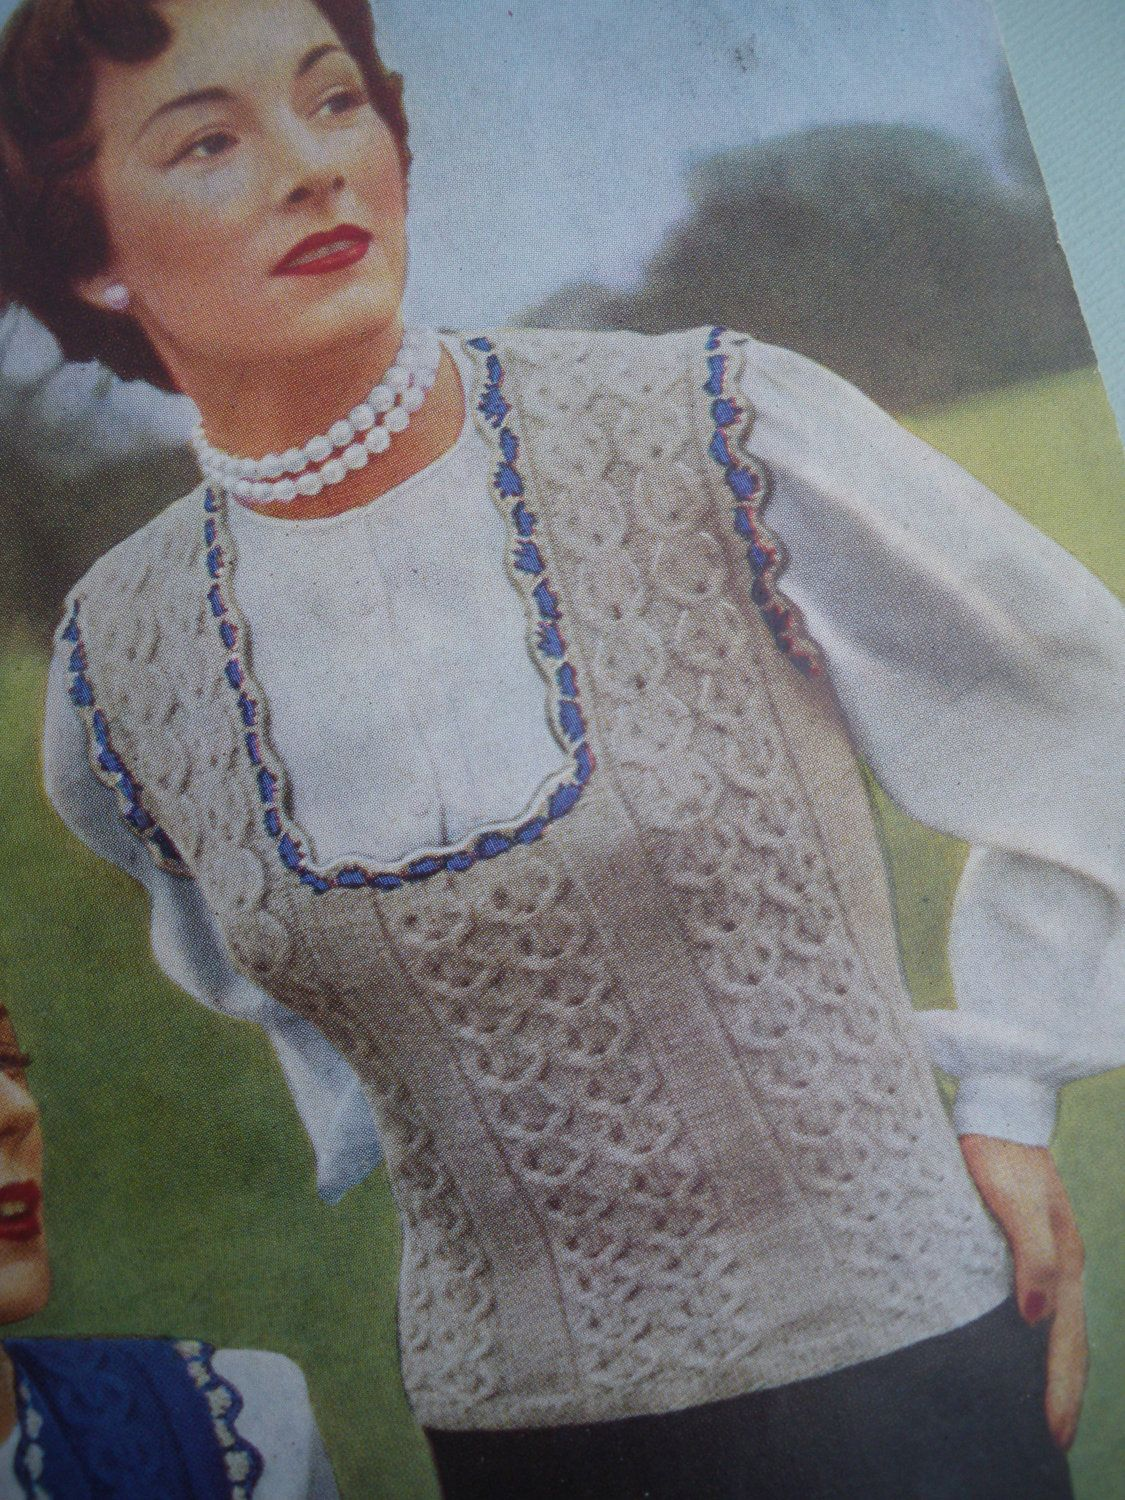 Vintage 1940s 1950s Knitting Pattern Womens Waistcoat and Pullover / Vest / Jerkin - 40s 50s original pattern. $16.00, via Etsy.